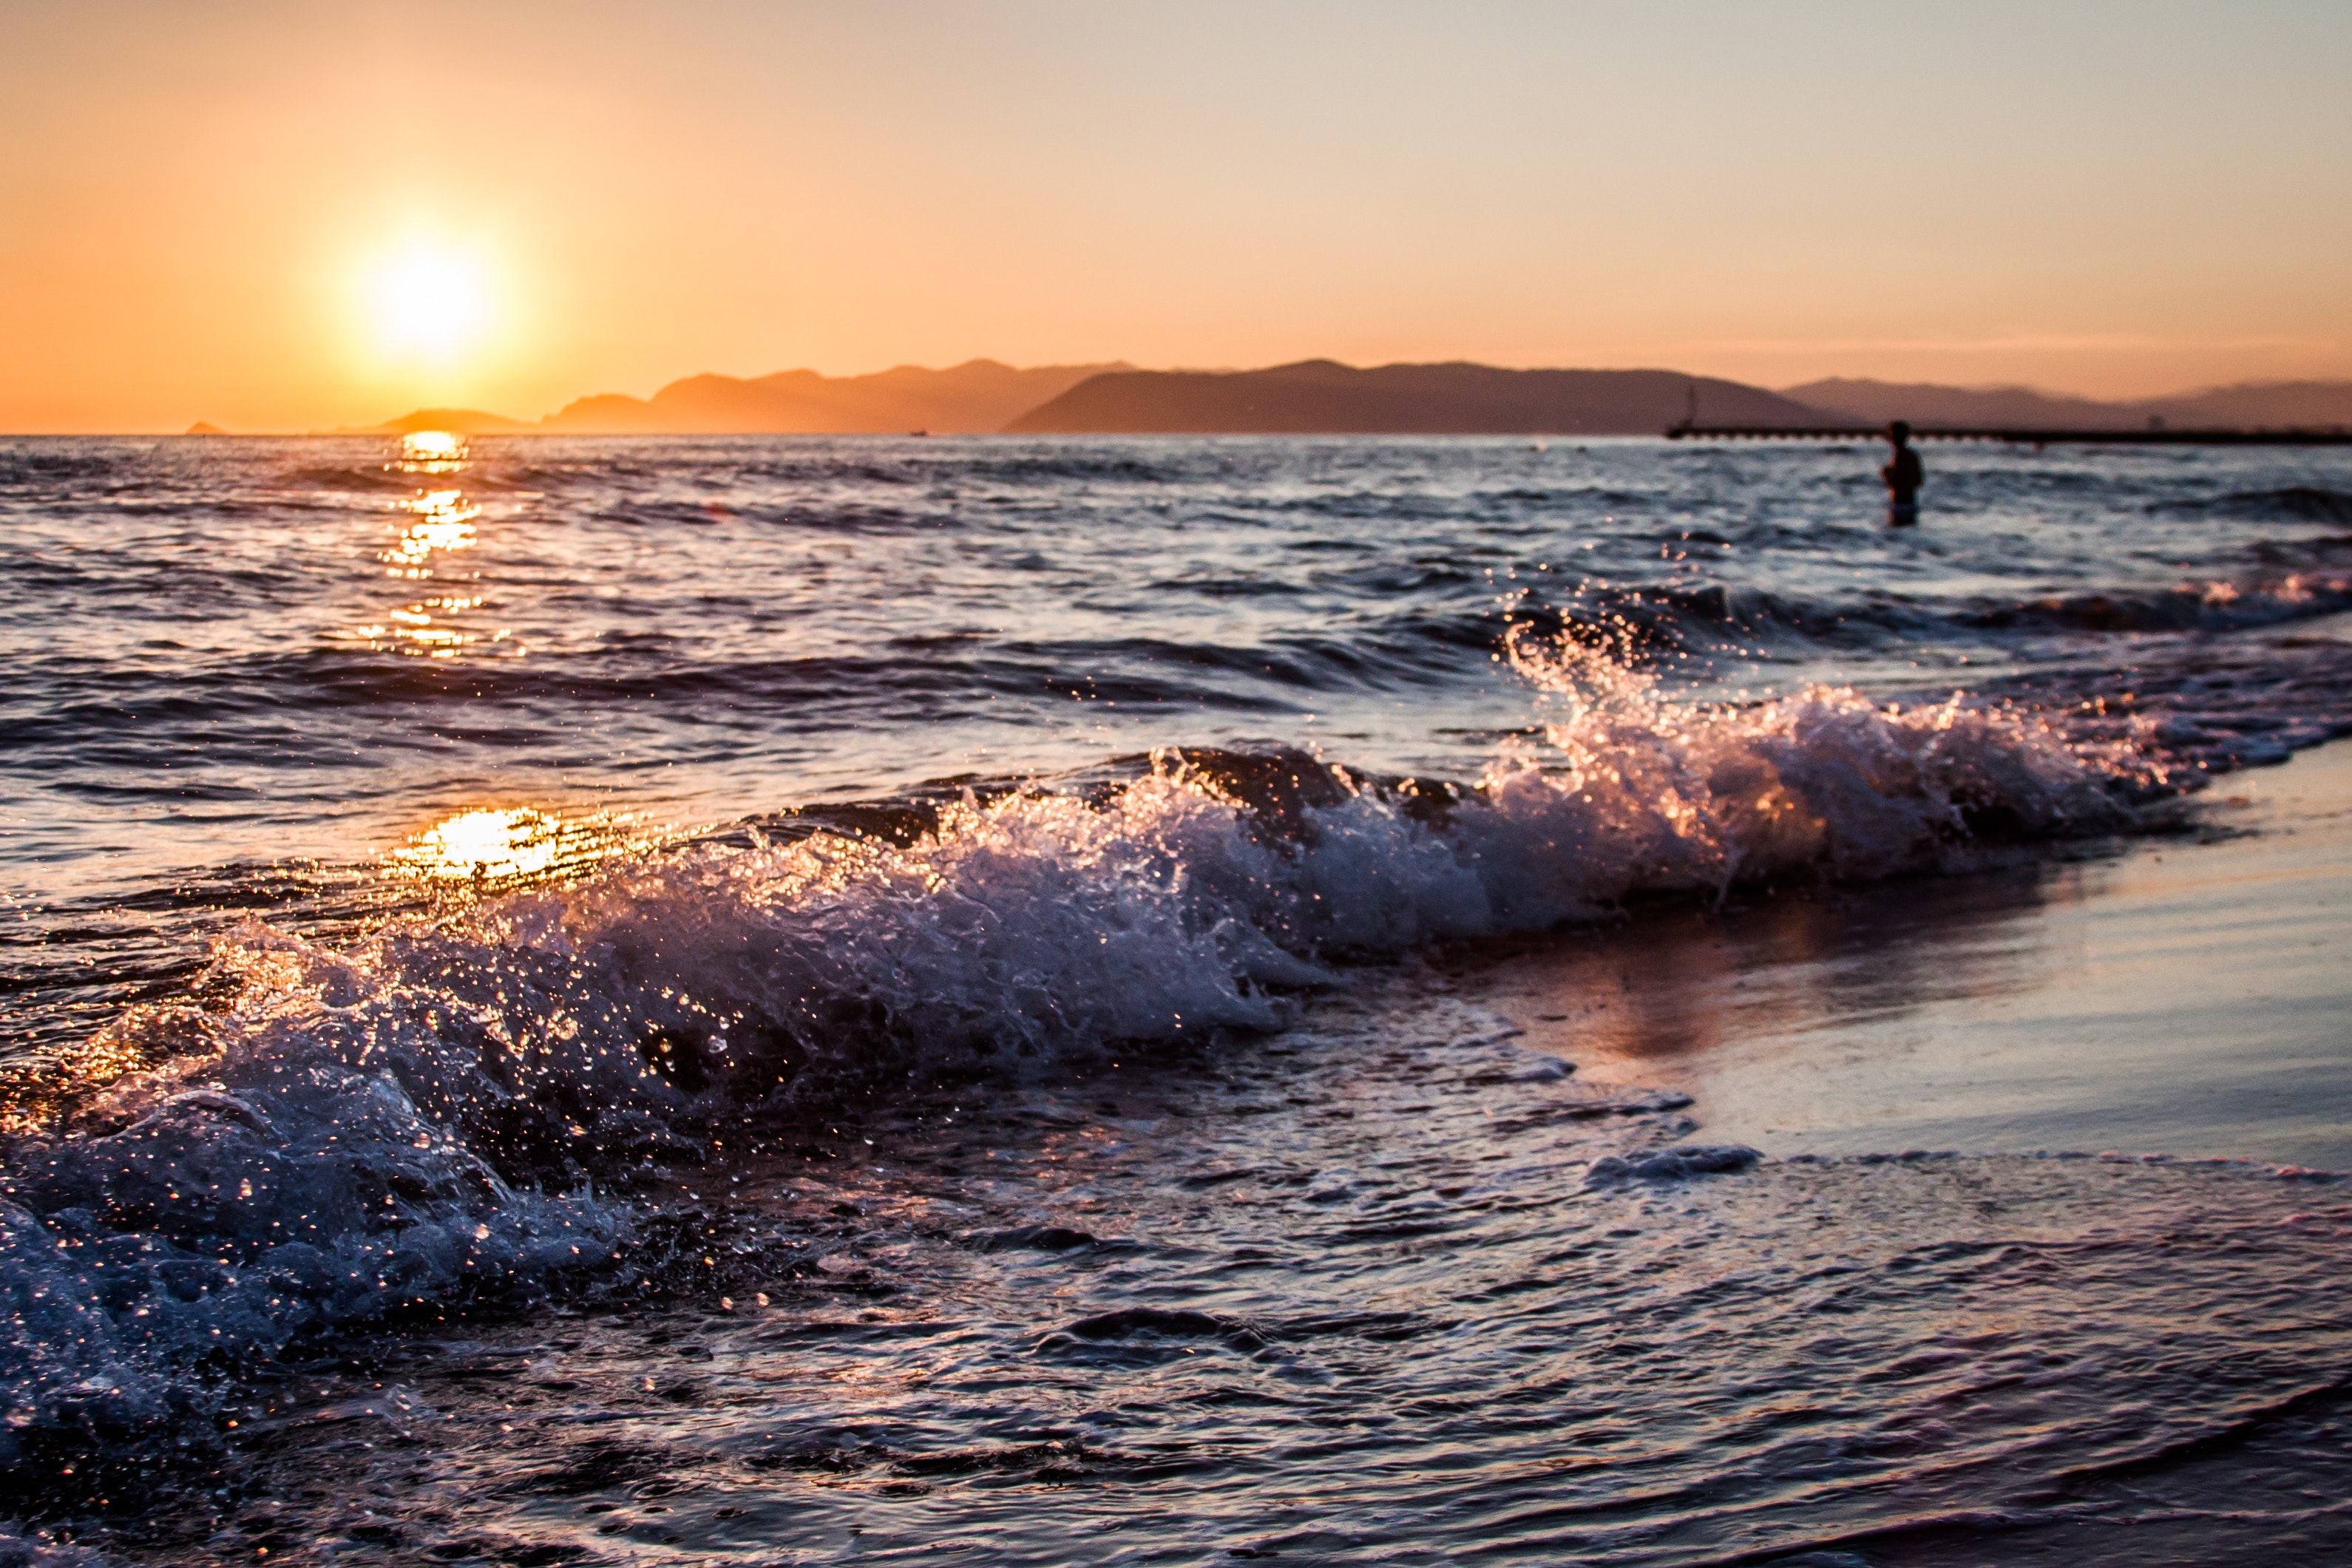 Person on Beach during Golden Hour, Beach, Sand, Water, Sunset, HQ Photo